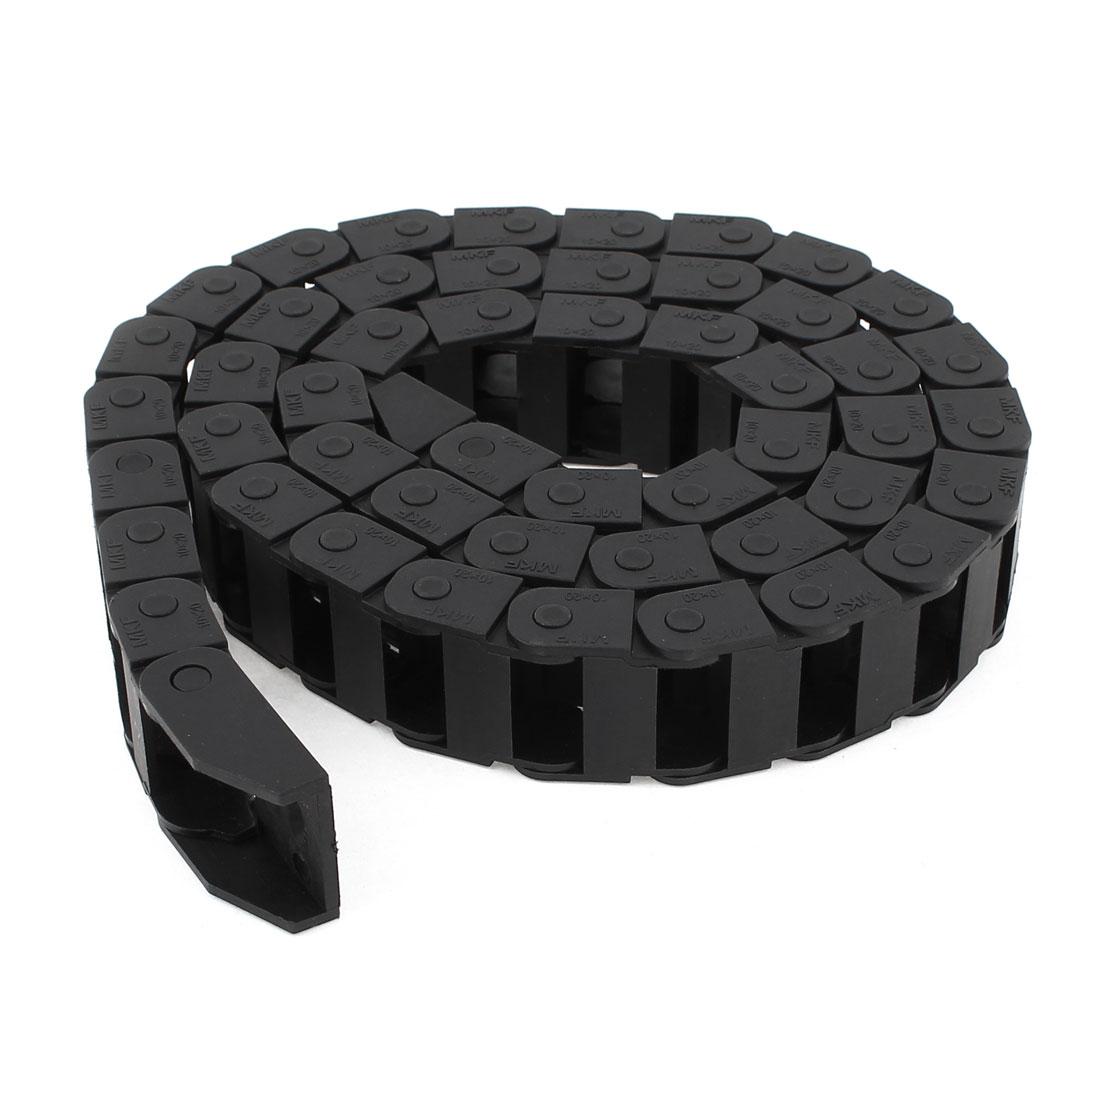 Plastic Towline Cable Carrier Drag Chain Connector 10x20mm 106cm Long